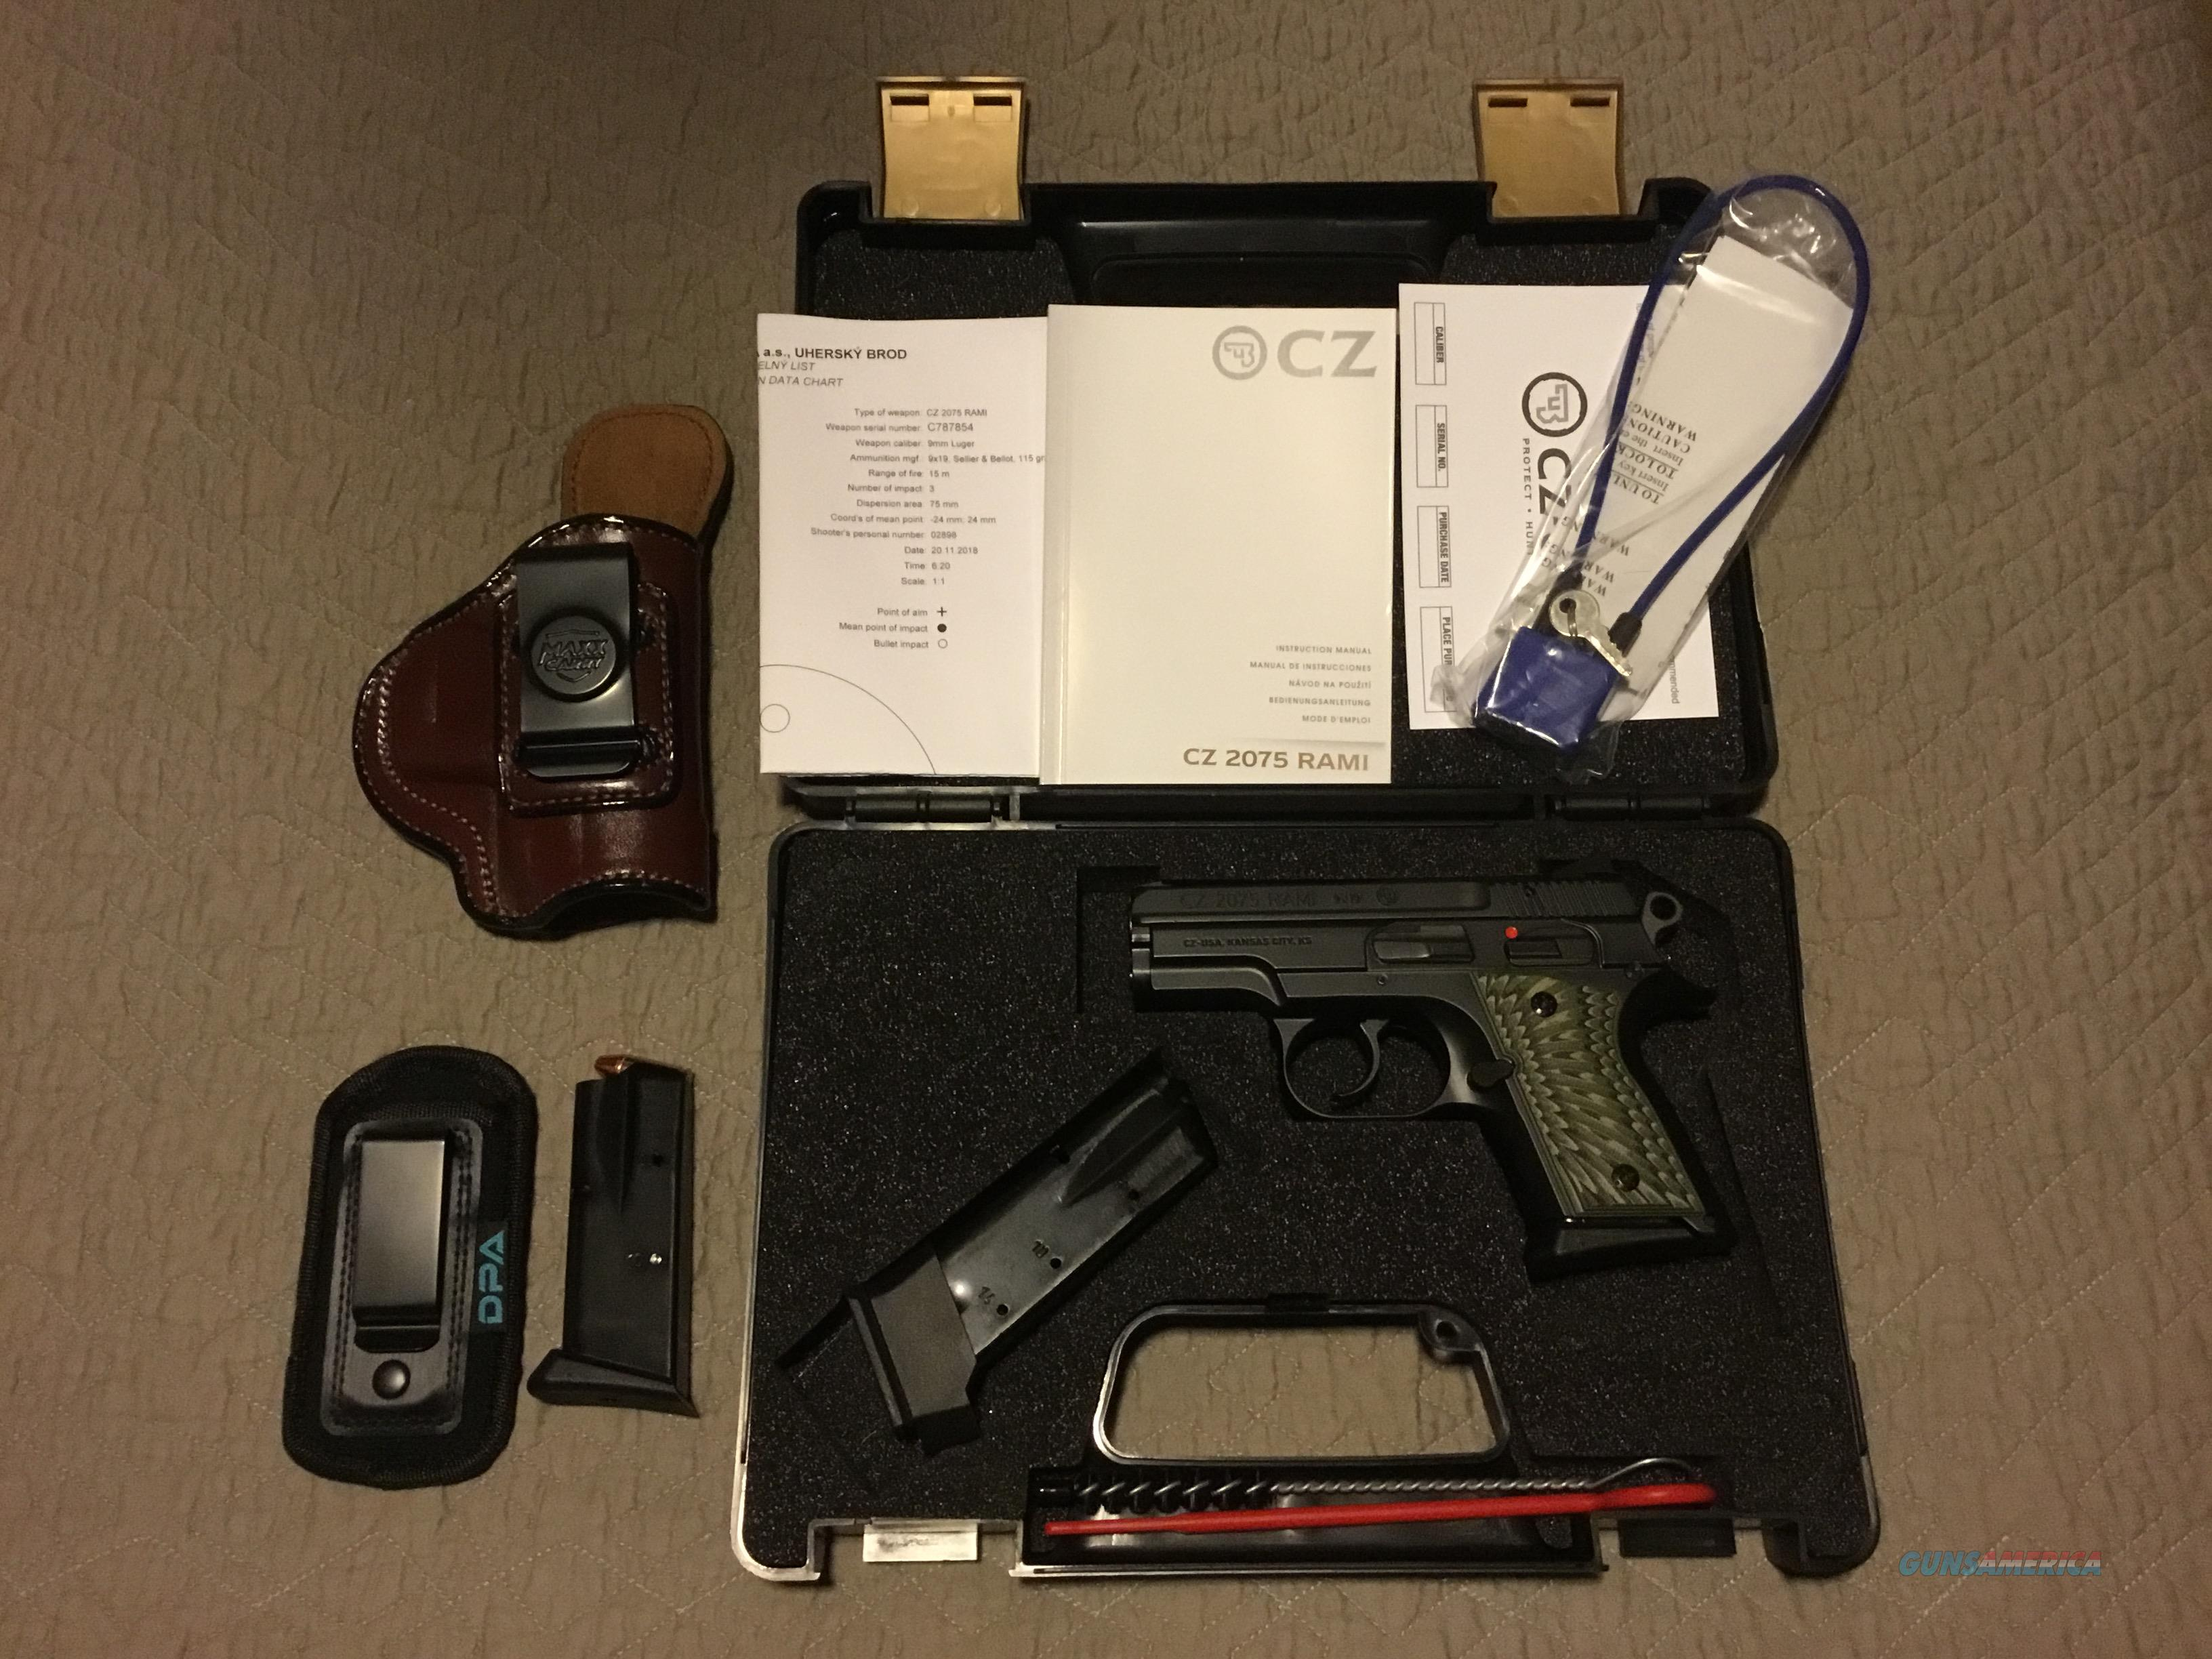 CZ RAMI 9mm safety.  Guns > Pistols > CZ Pistols